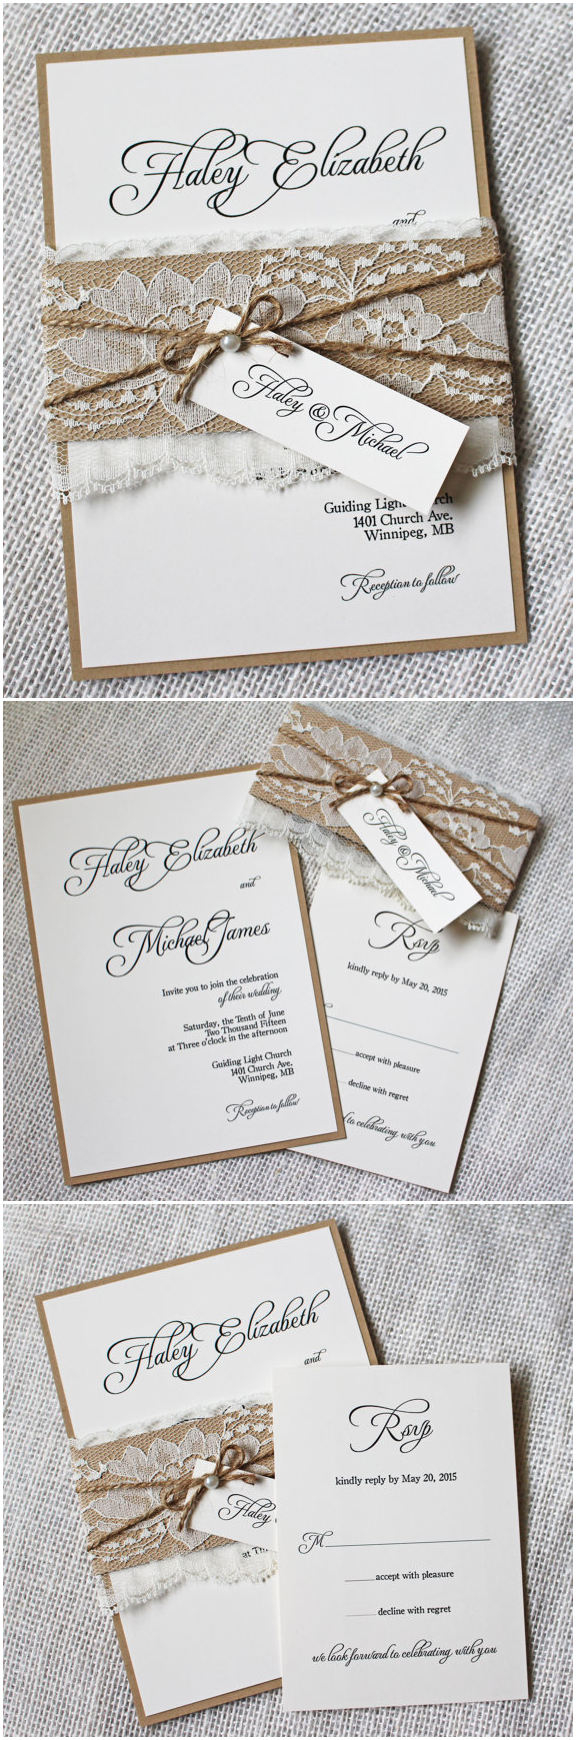 Rustic Wedding Invitation Top 10 Rustic Wedding Invitations To Wow Your Guests